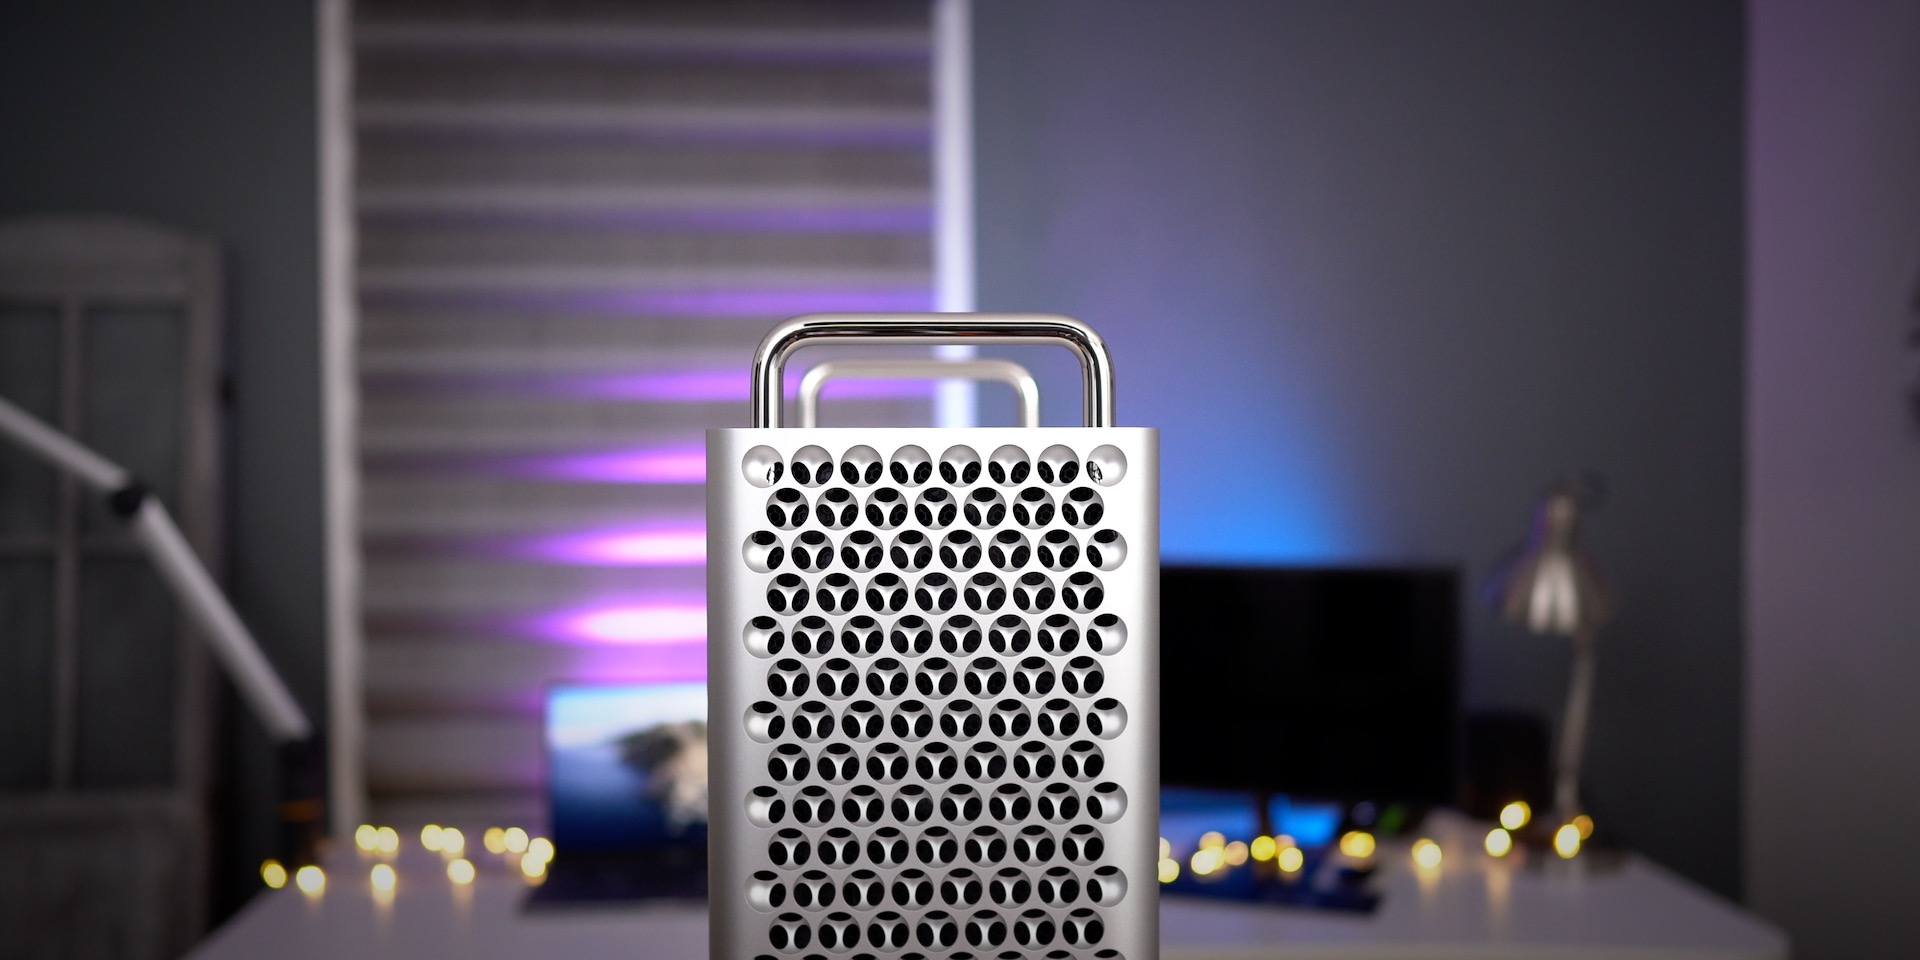 Mac Pro lattice pattern